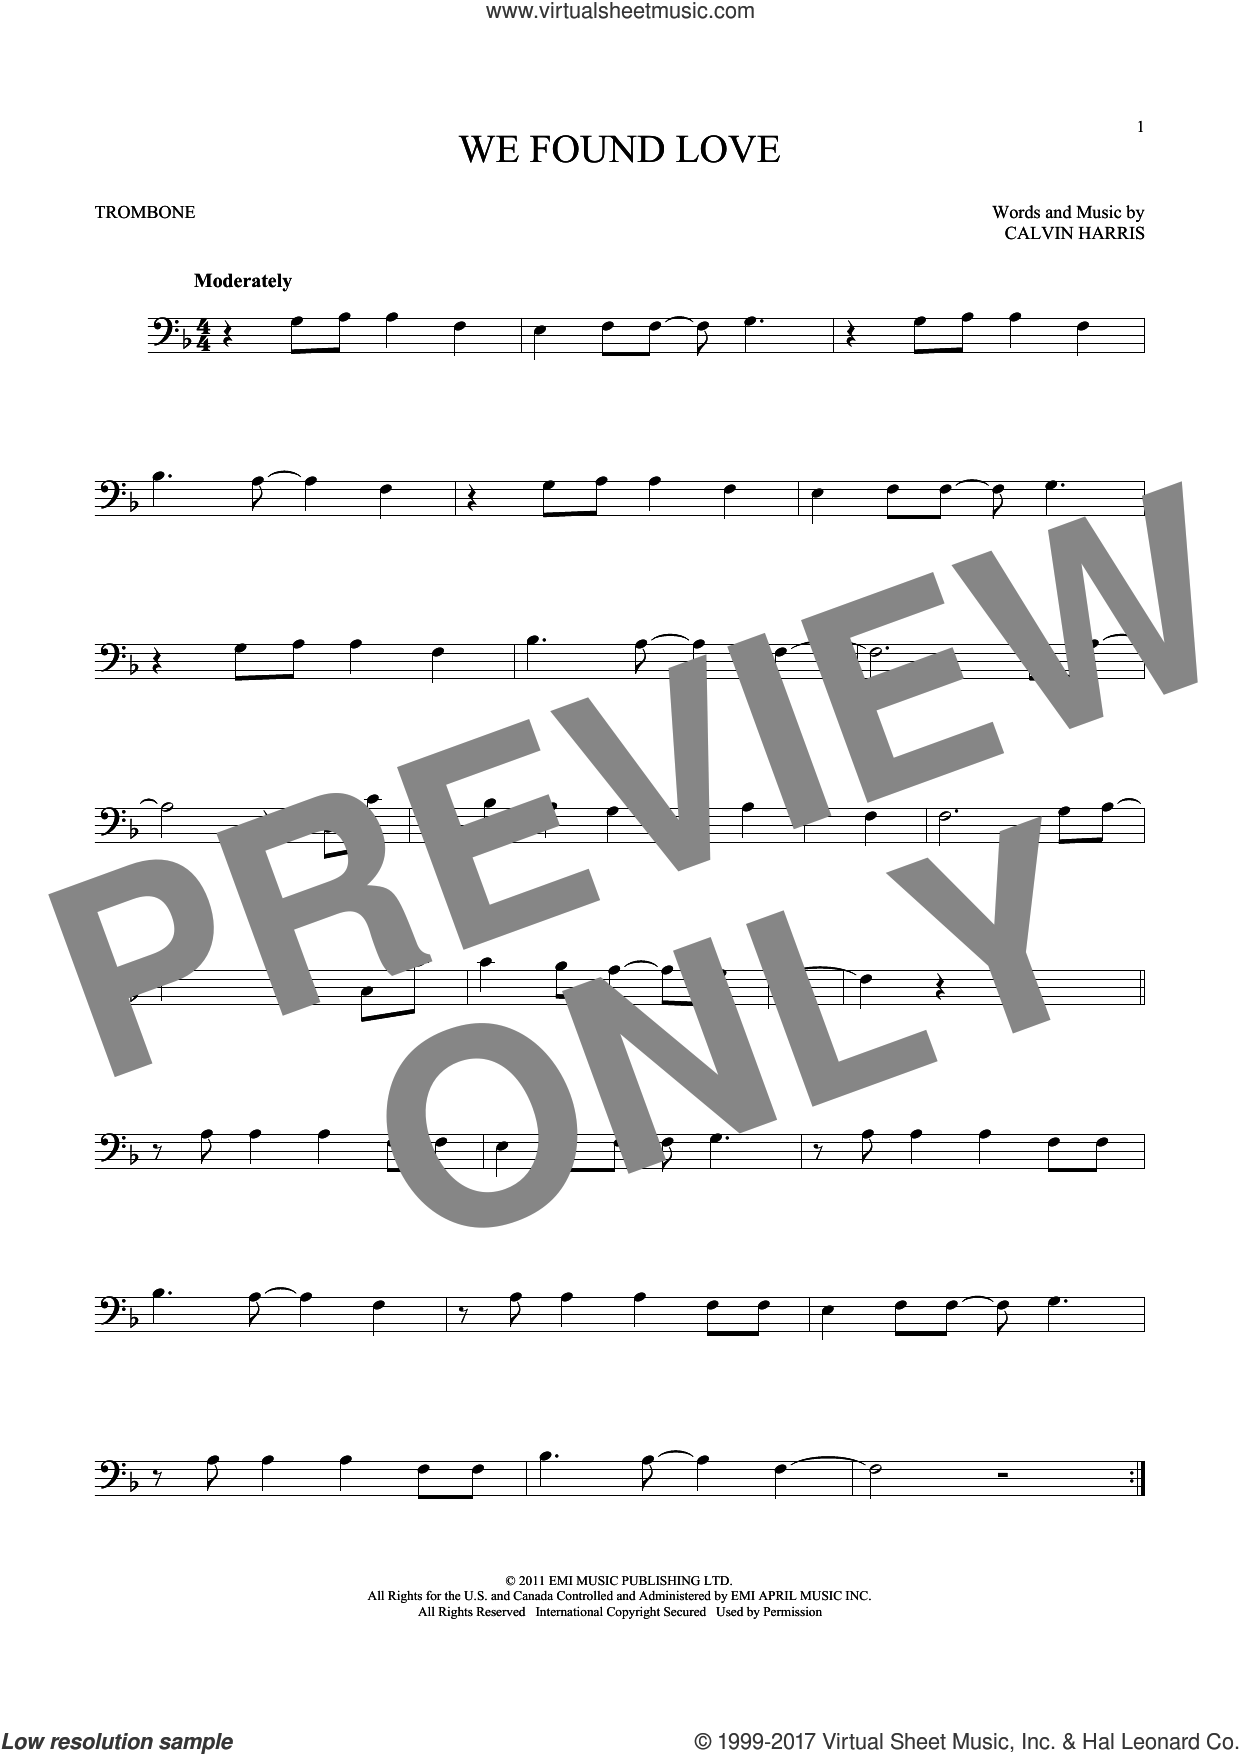 We Found Love sheet music for trombone solo by Rihanna featuring Calvin Harris and Calvin Harris, wedding score, intermediate skill level